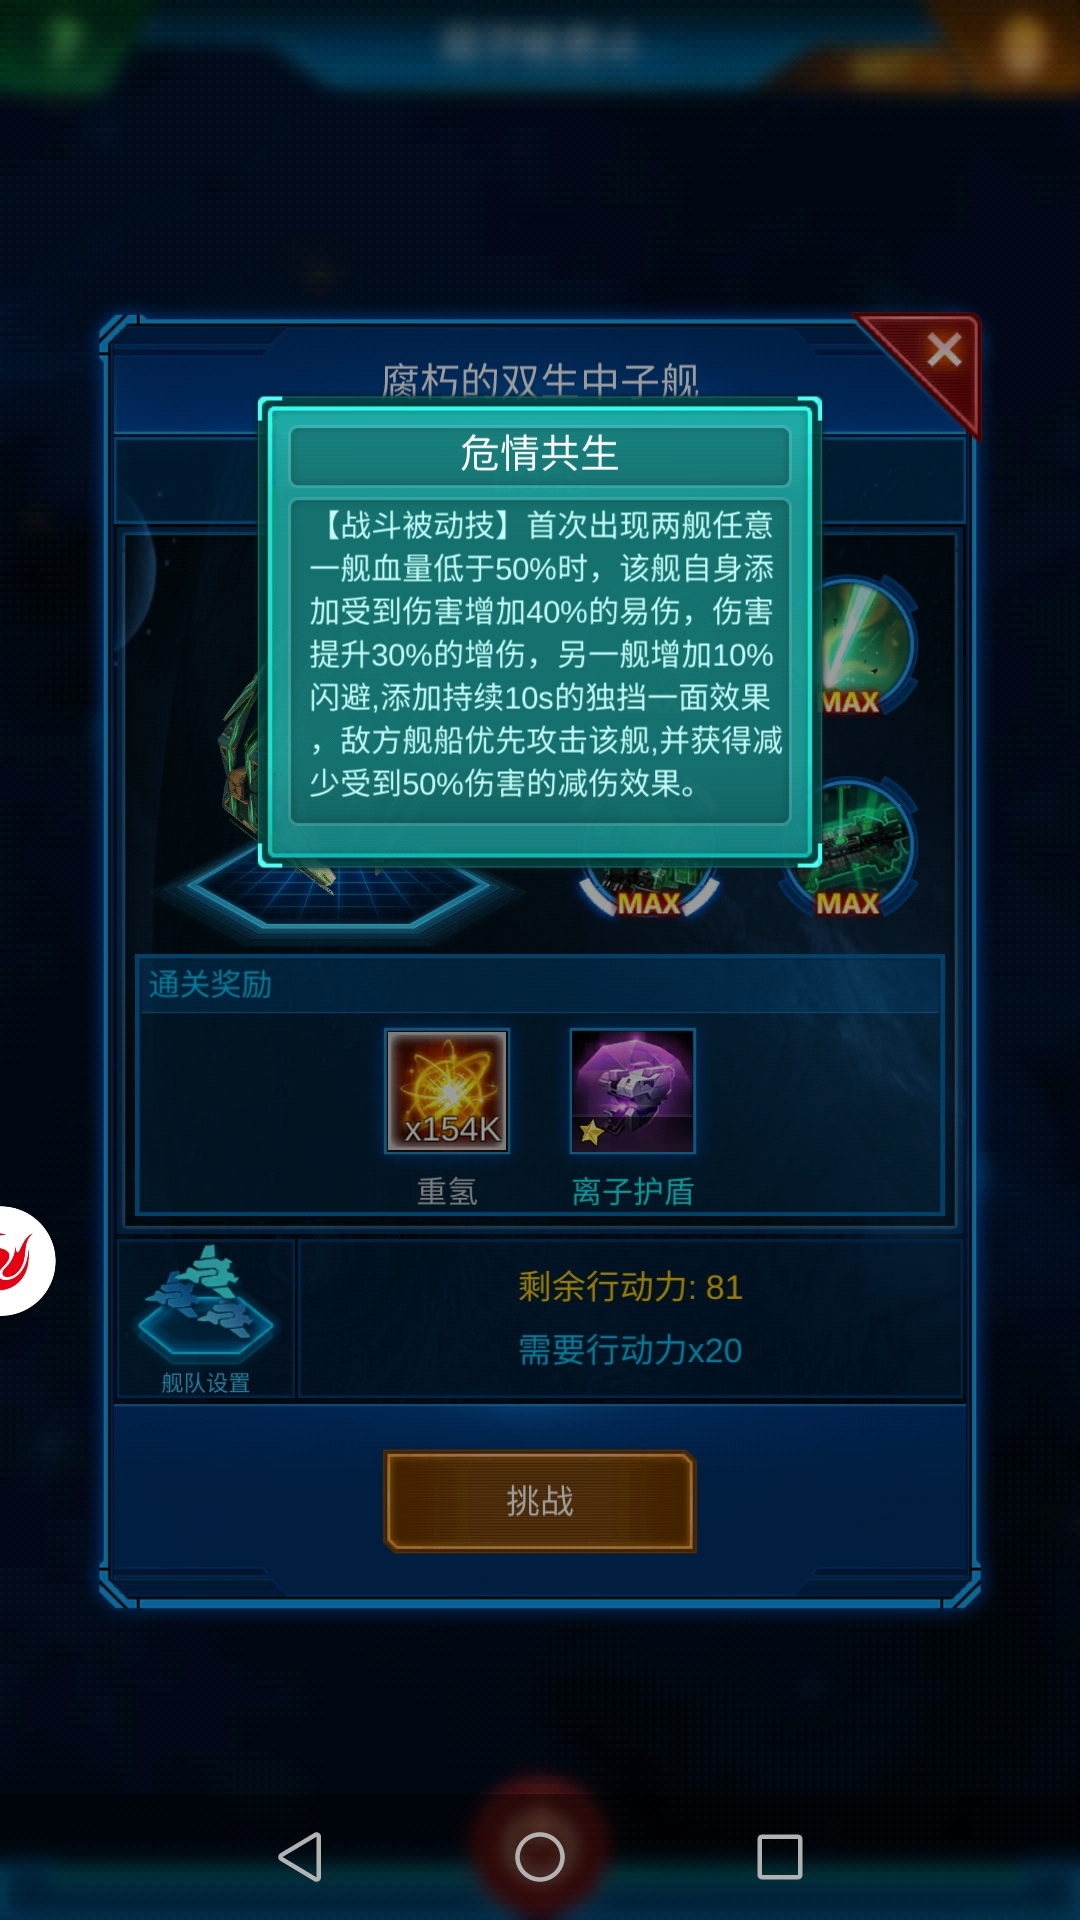 学校资料Screenshot_20200409-152728.jpg